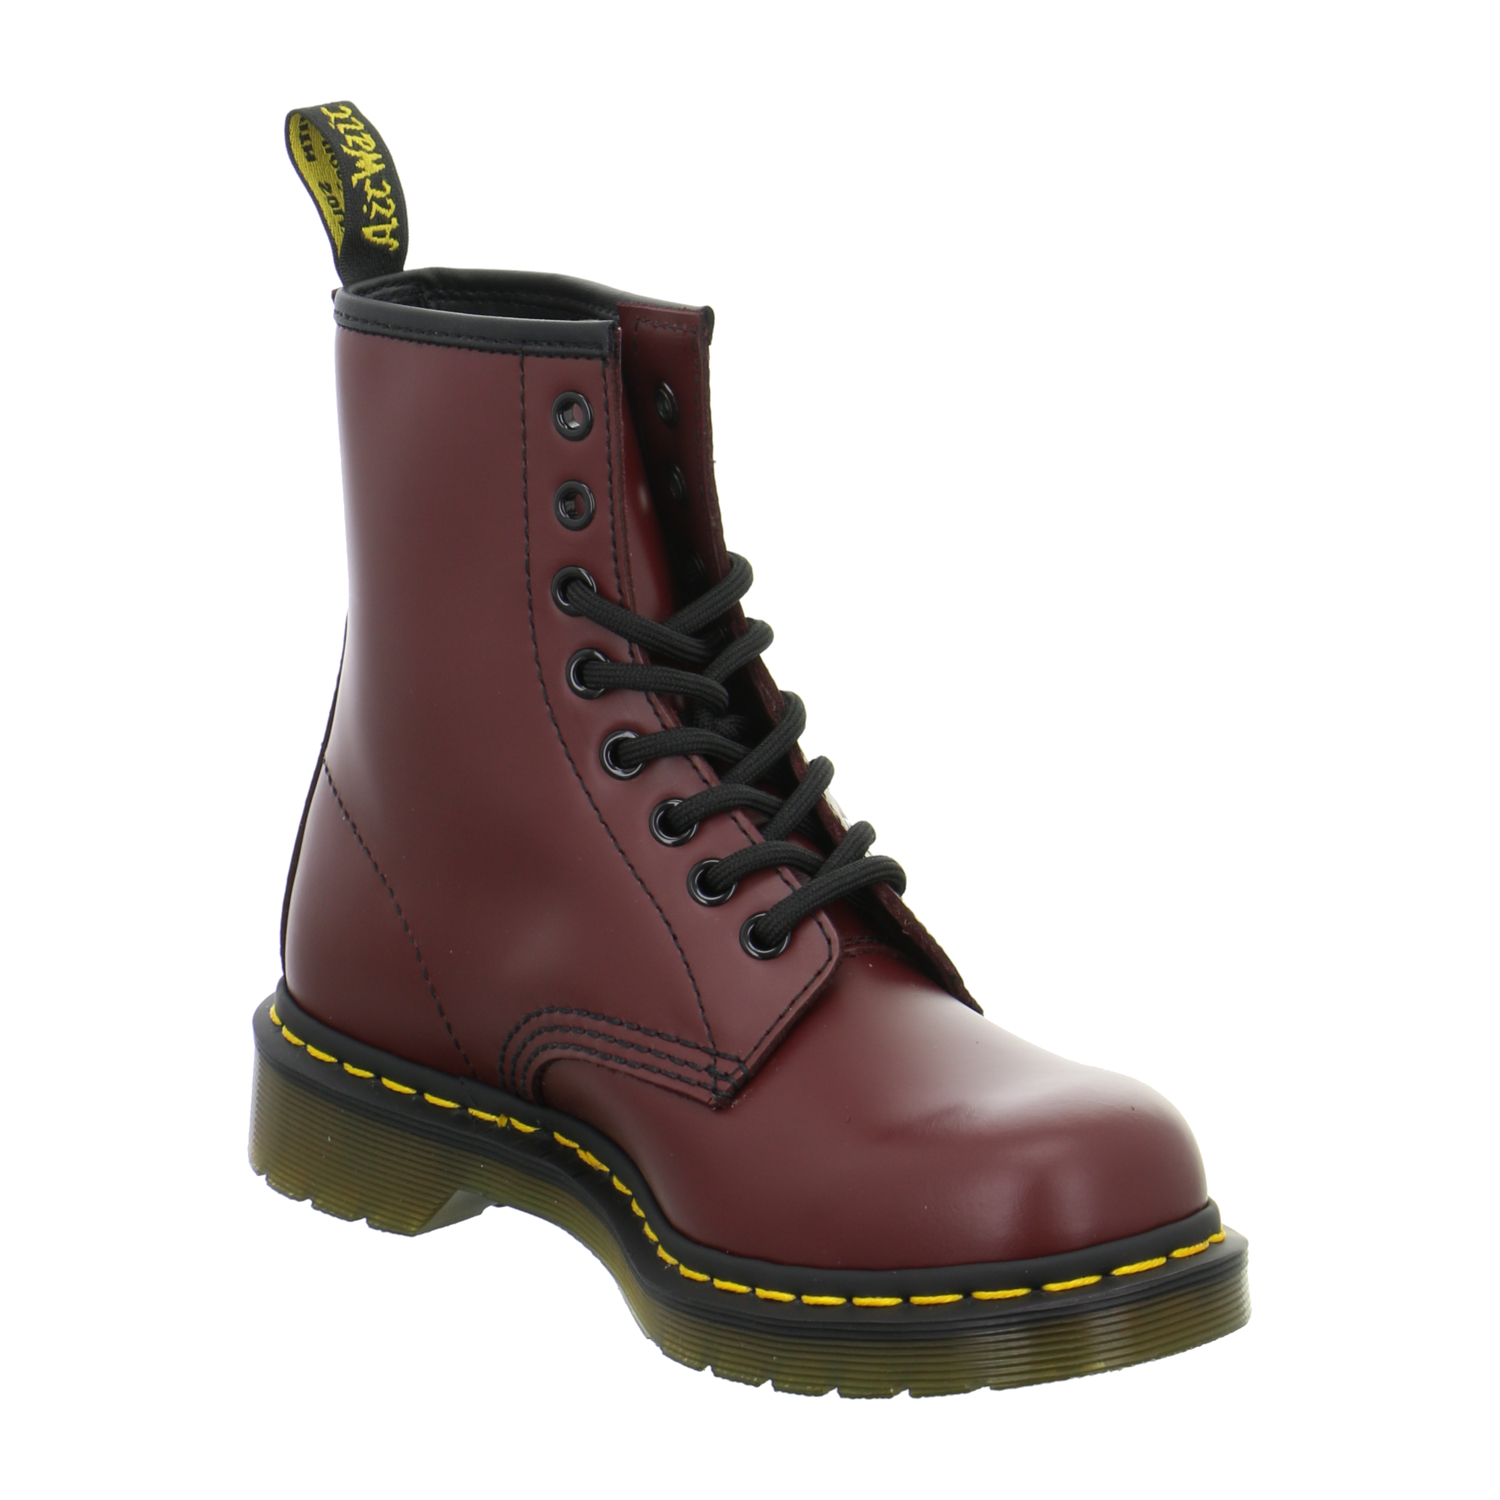 dr martens herren damen doc boots stiefel schuhe rot 8 loch ebay. Black Bedroom Furniture Sets. Home Design Ideas